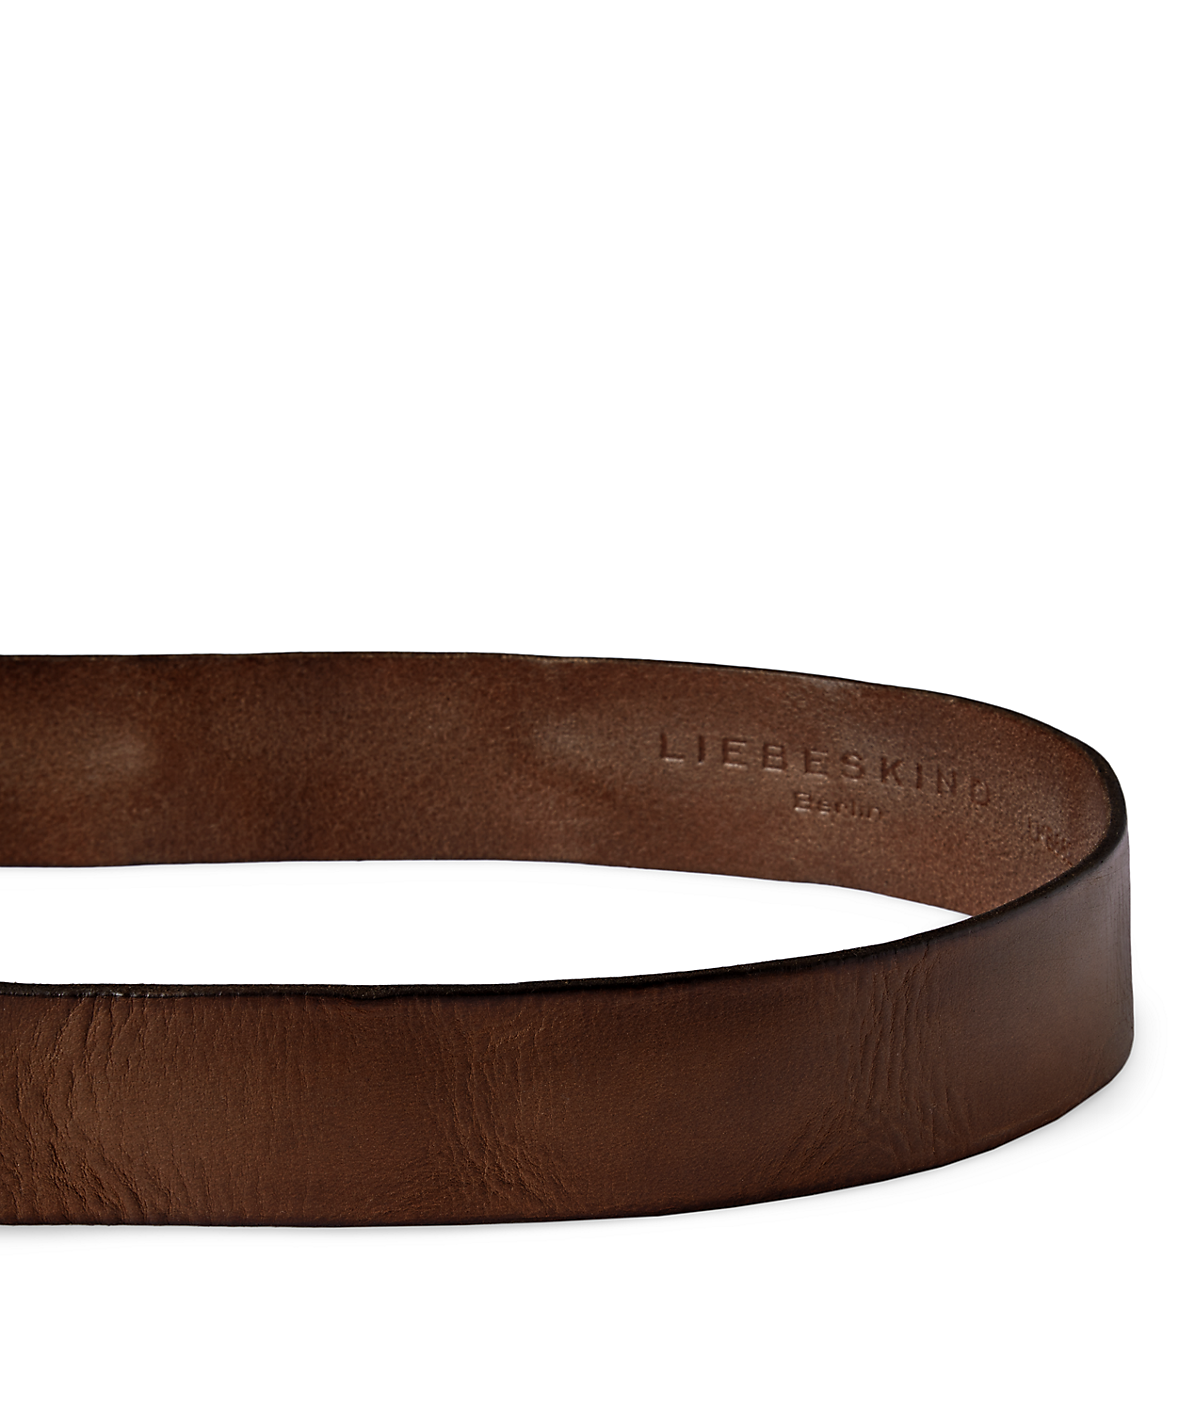 Leather belt with studs from liebeskind